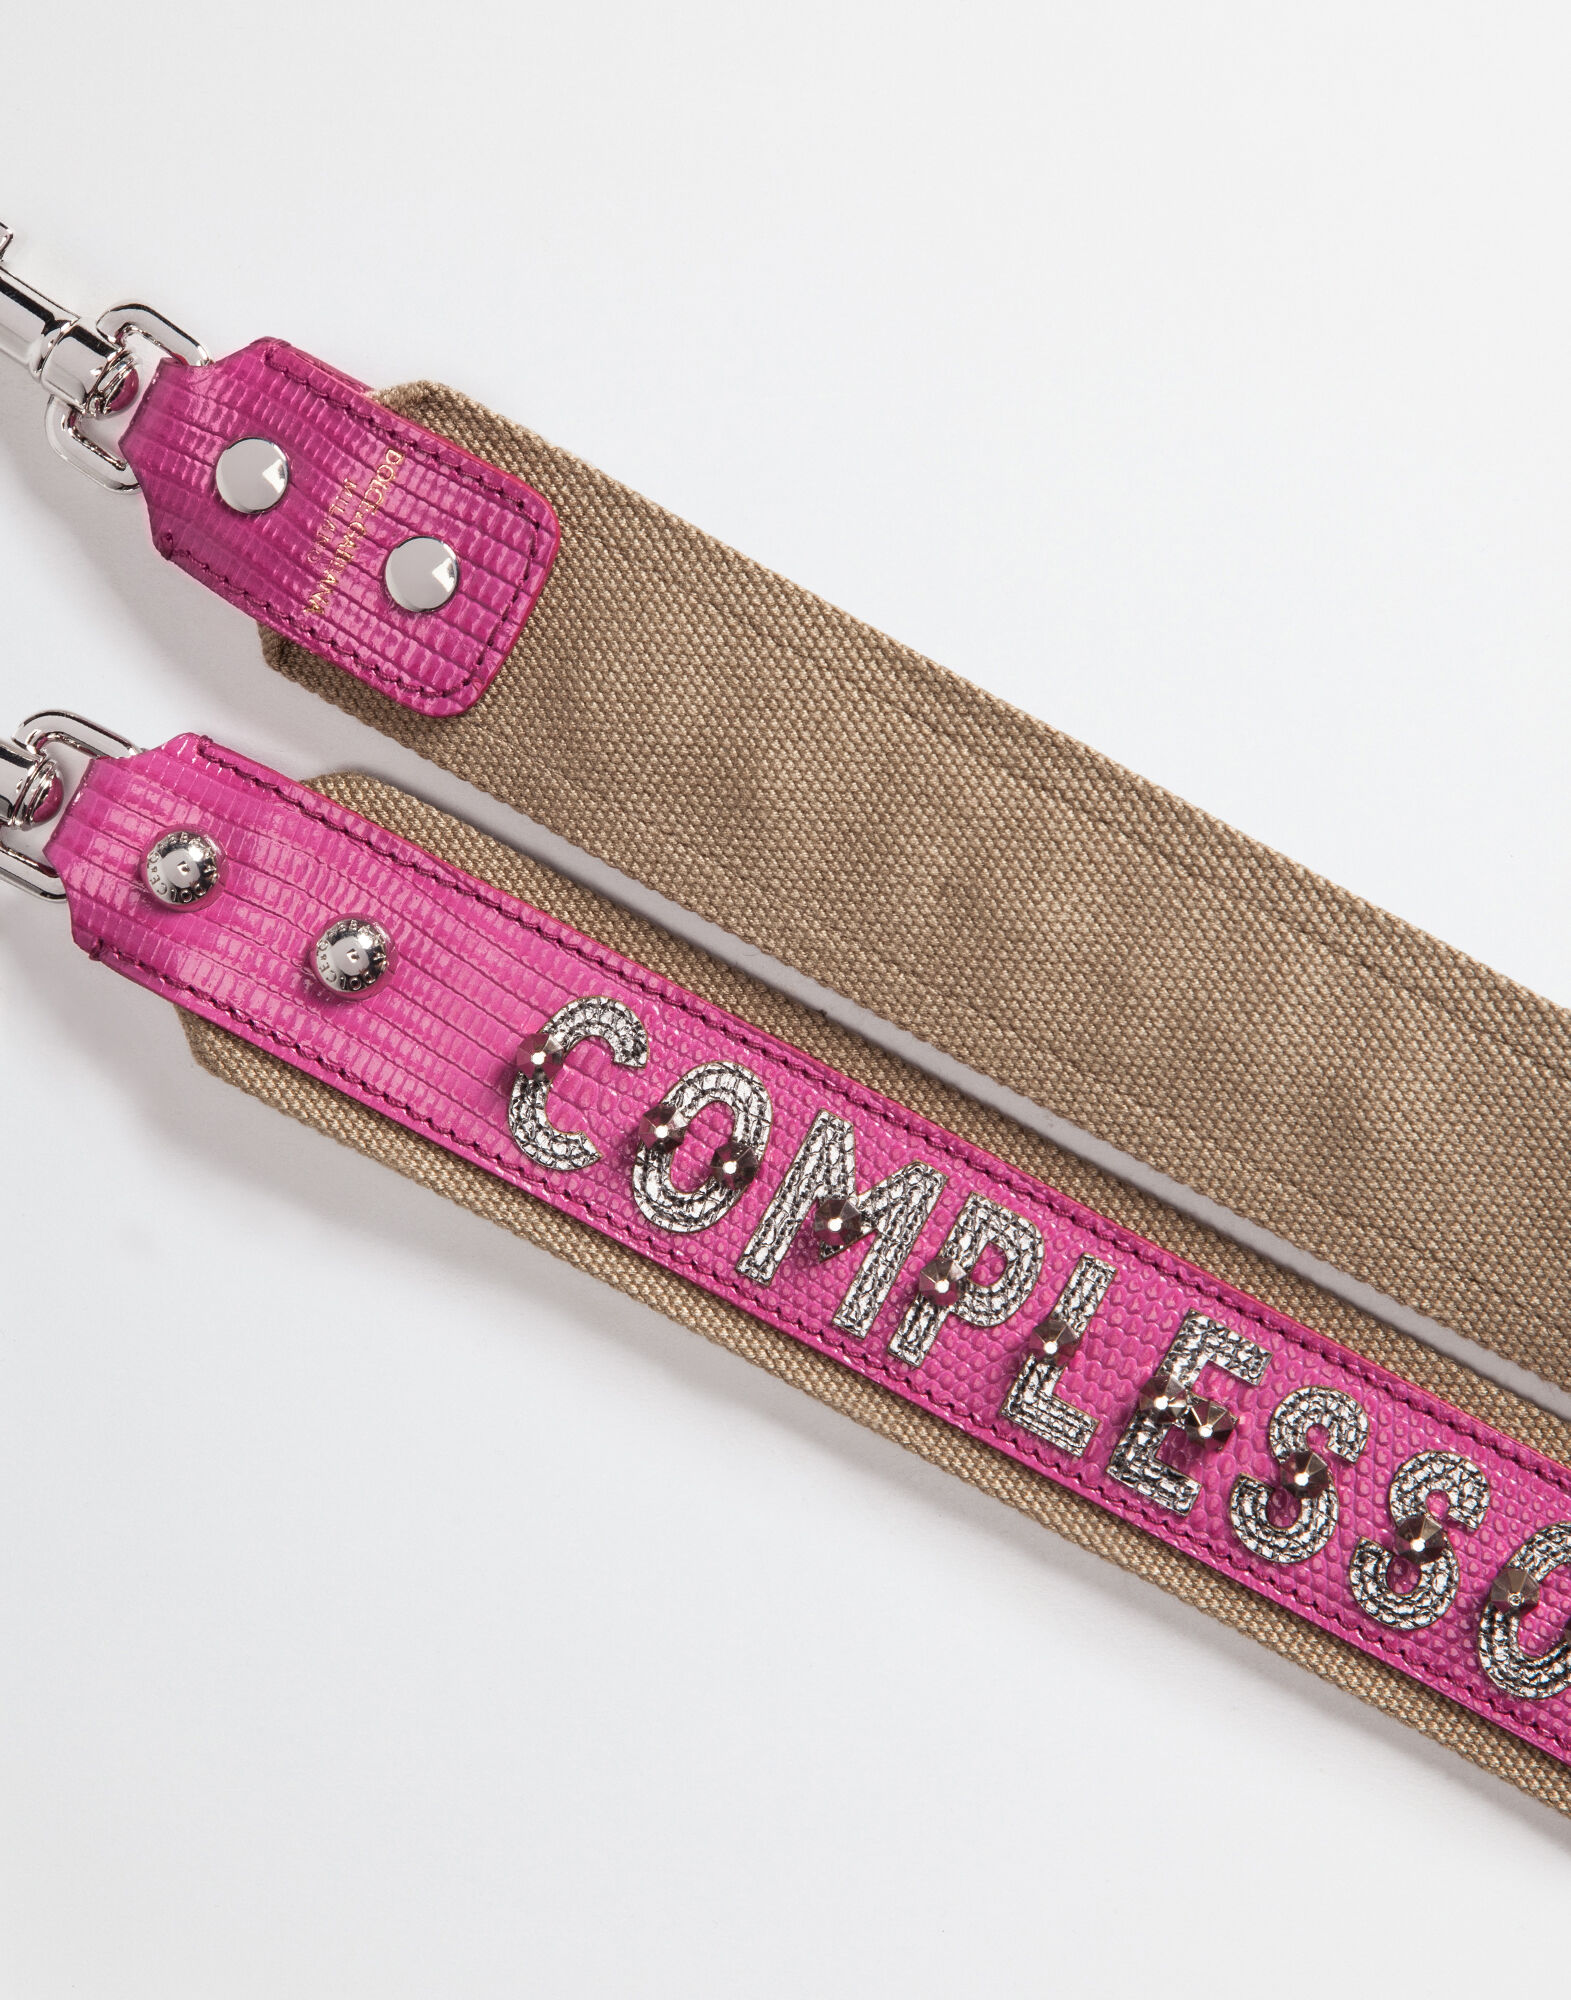 DAUPHINE LEATHER STRAP WITH APPLIQUÉ